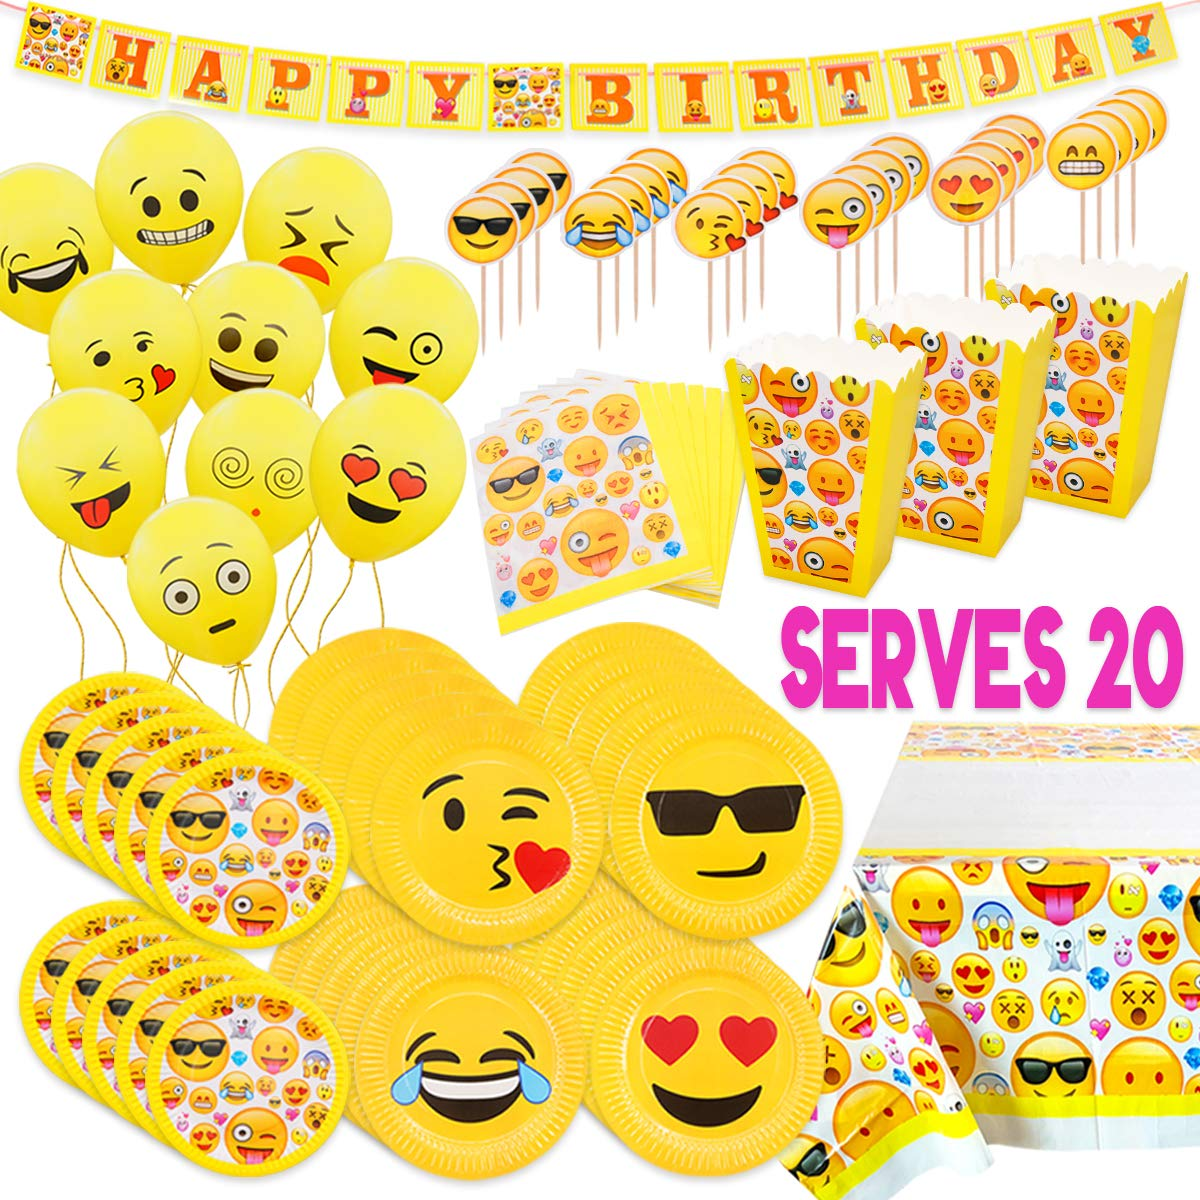 MelonBoat Emoji Party Supplies Birthday Decorations Kit, Plates, Napkins, Tablecloth, Popcorn Boxes, Cake Toppers, Banners, Latex Balloons, 102 ct, Serves 20 by MelonBoat